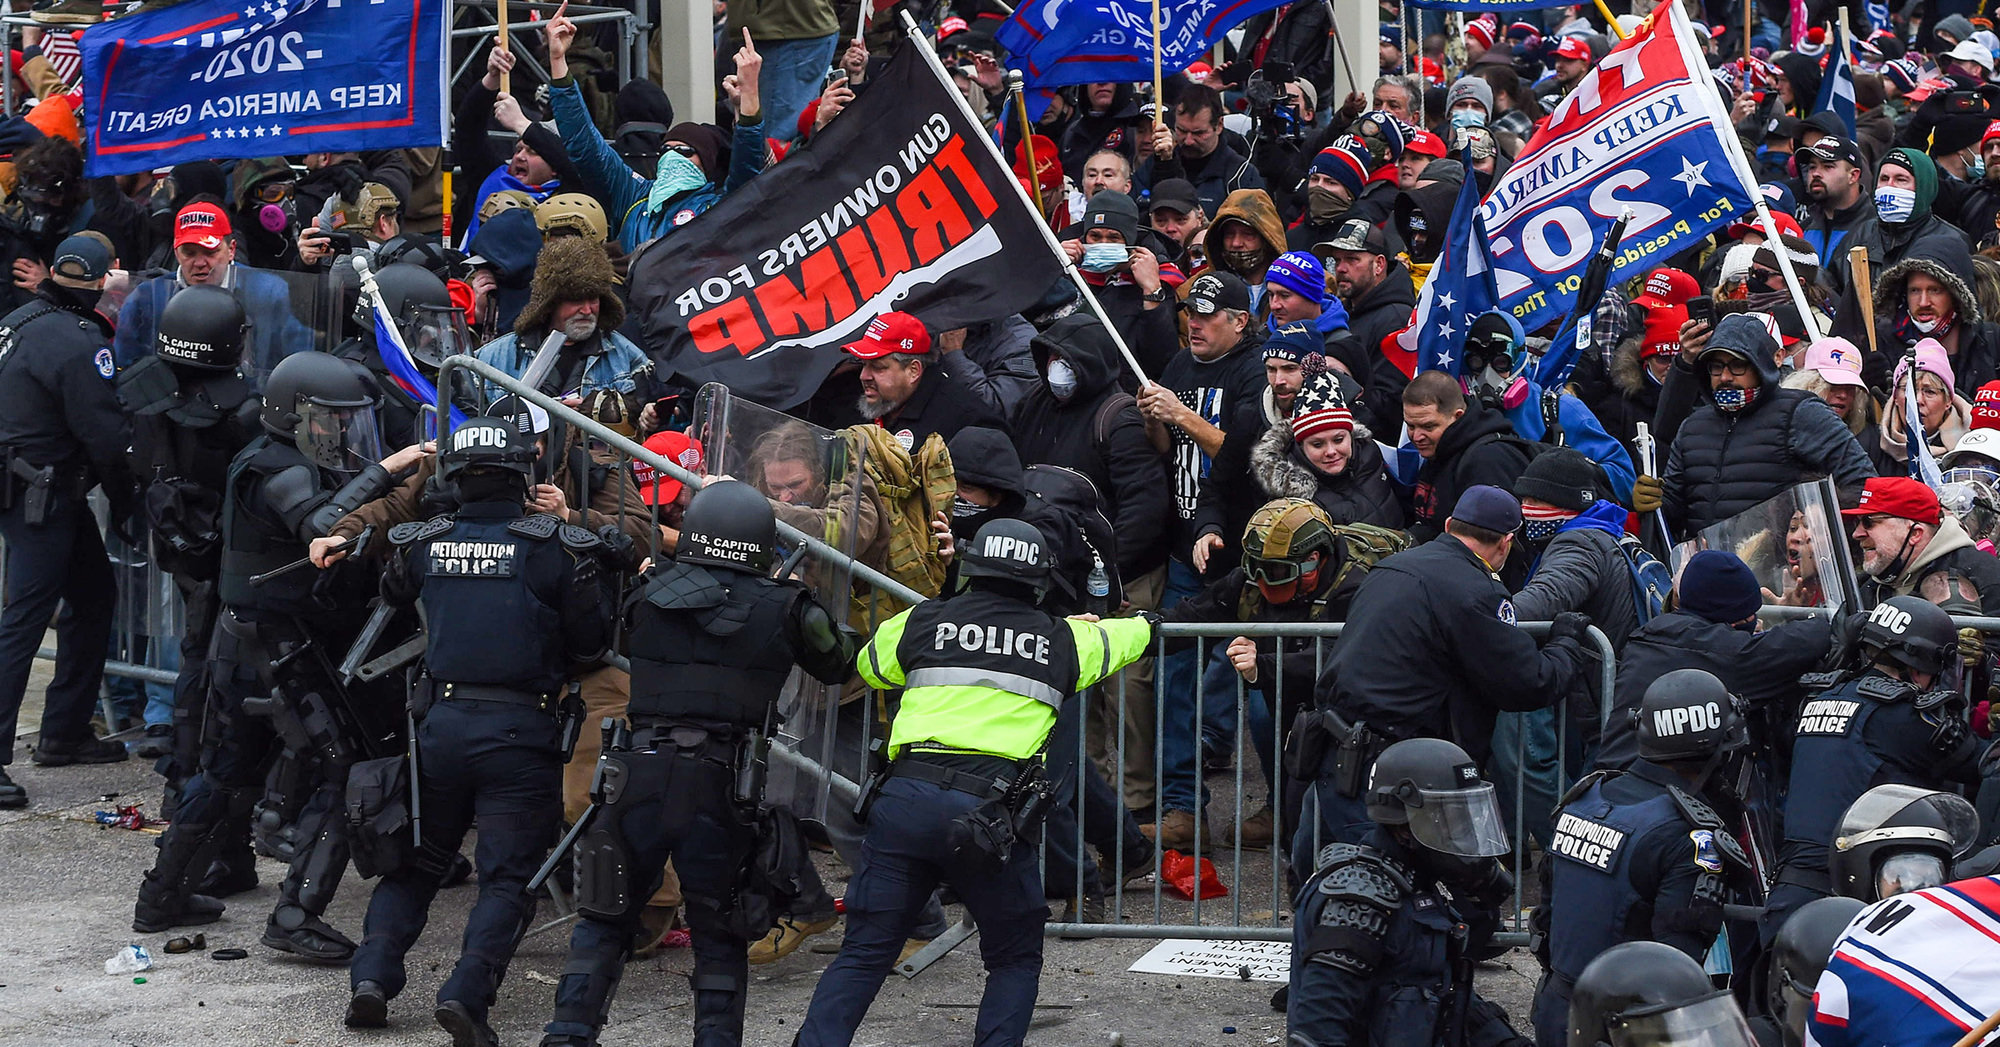 A pro-Trump mob clashes with law enforcement officers during the assault on the Capitol in Washington, D.C. on January 6.